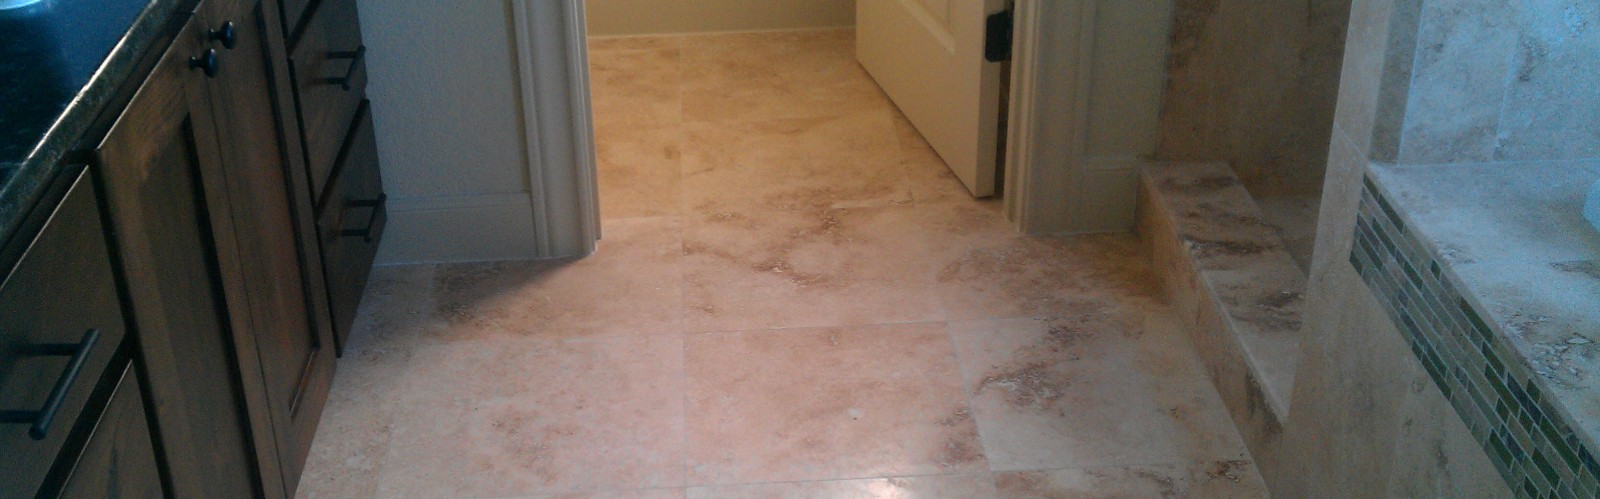 BFI Floors – San Antonio Texas Areas